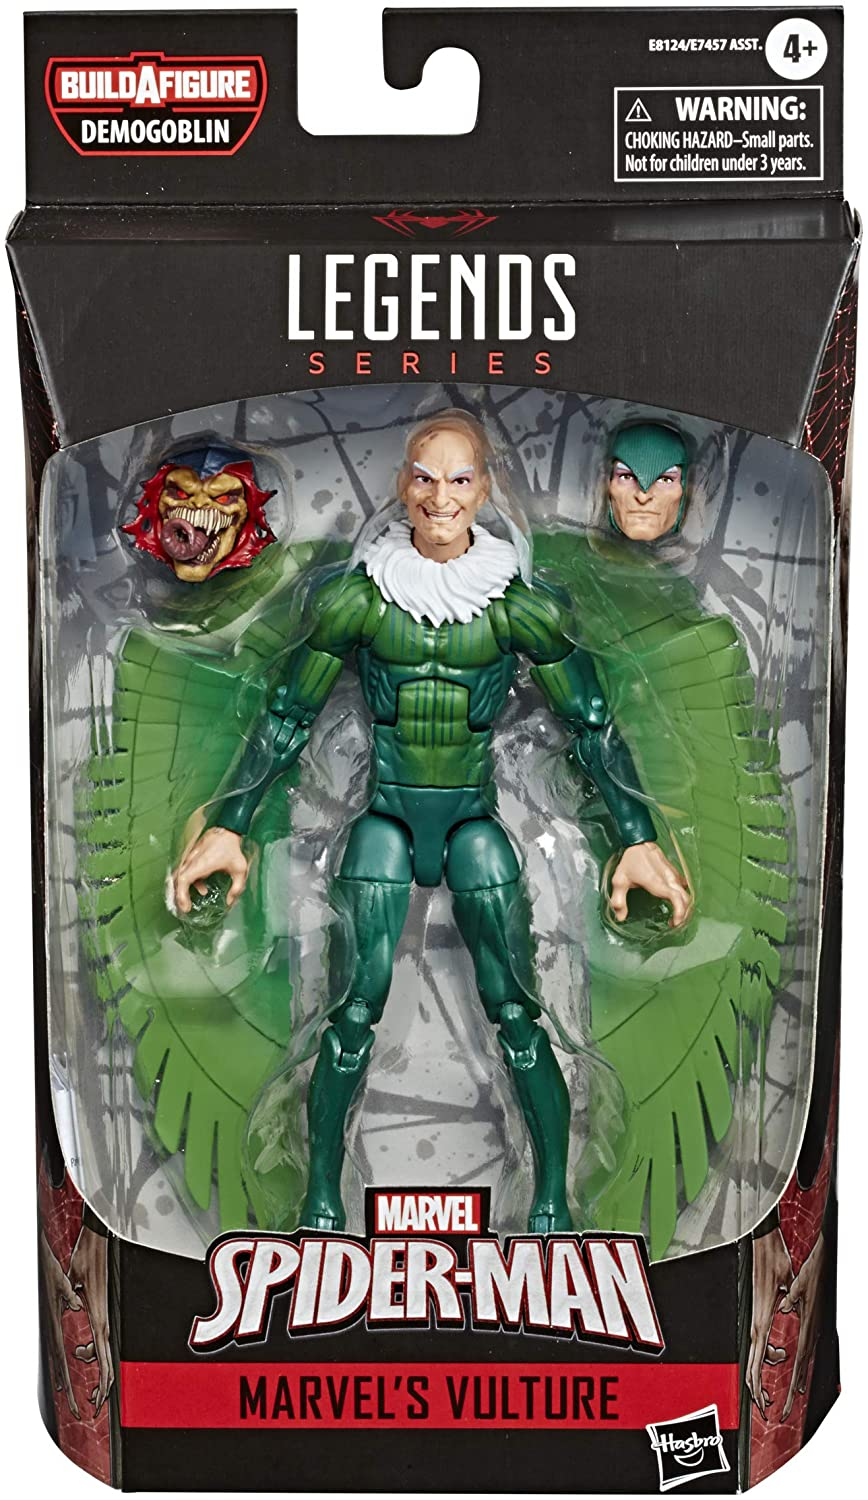 Hasbro Marvel Legends  Spider-Man - The Vulture figures